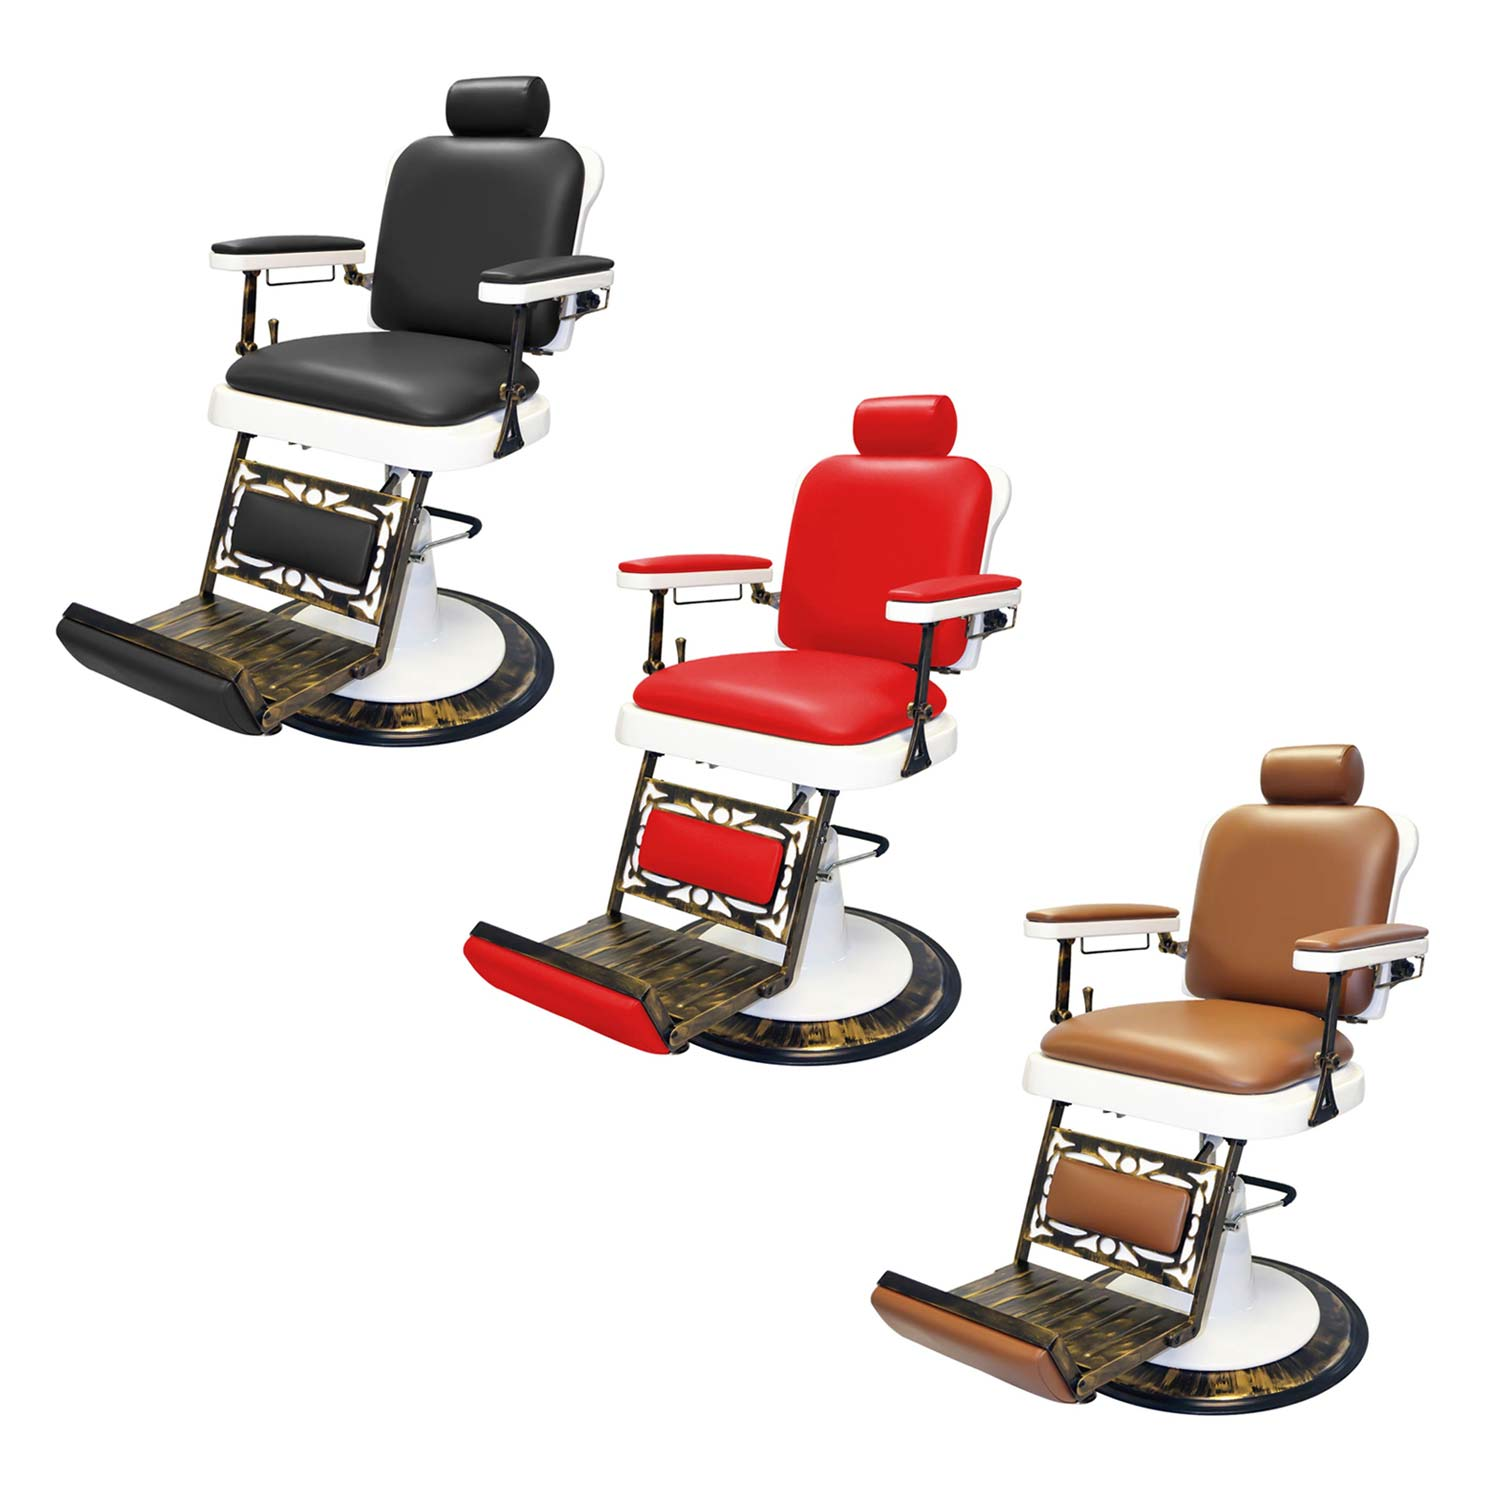 Pibbs 662 King Reclining Barber Chair alternative product image 4